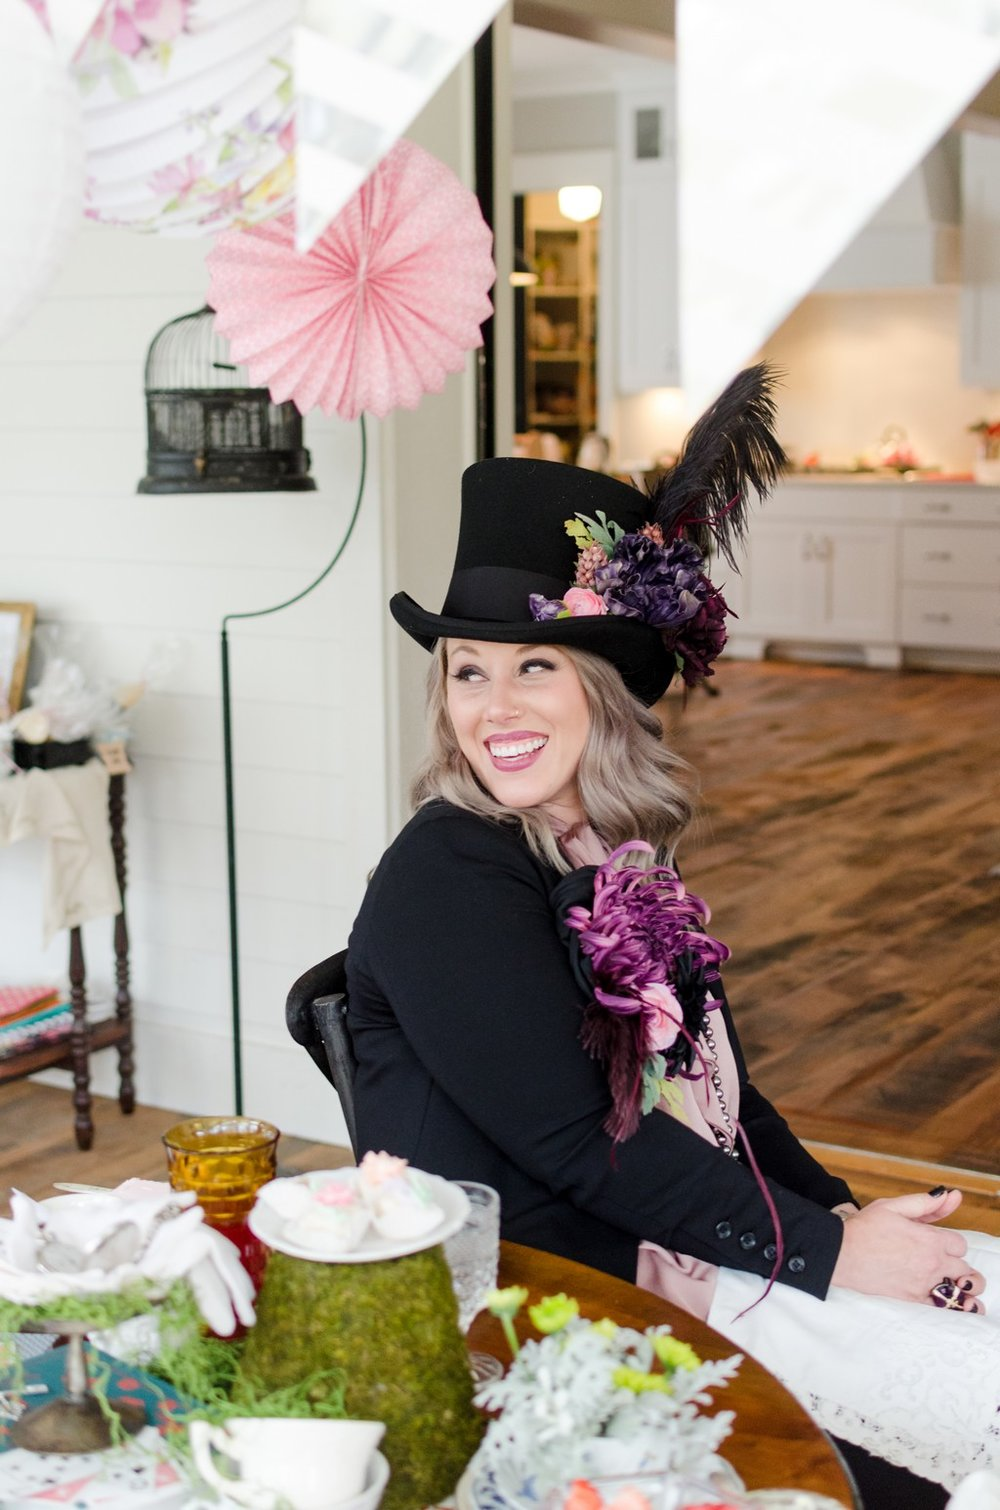 Alice-In-Wonderland-Mad-Hatter-Tea-Birthday-Party-Leipers-Fork-Nashville-Lifestyle-Event-Photographer+21